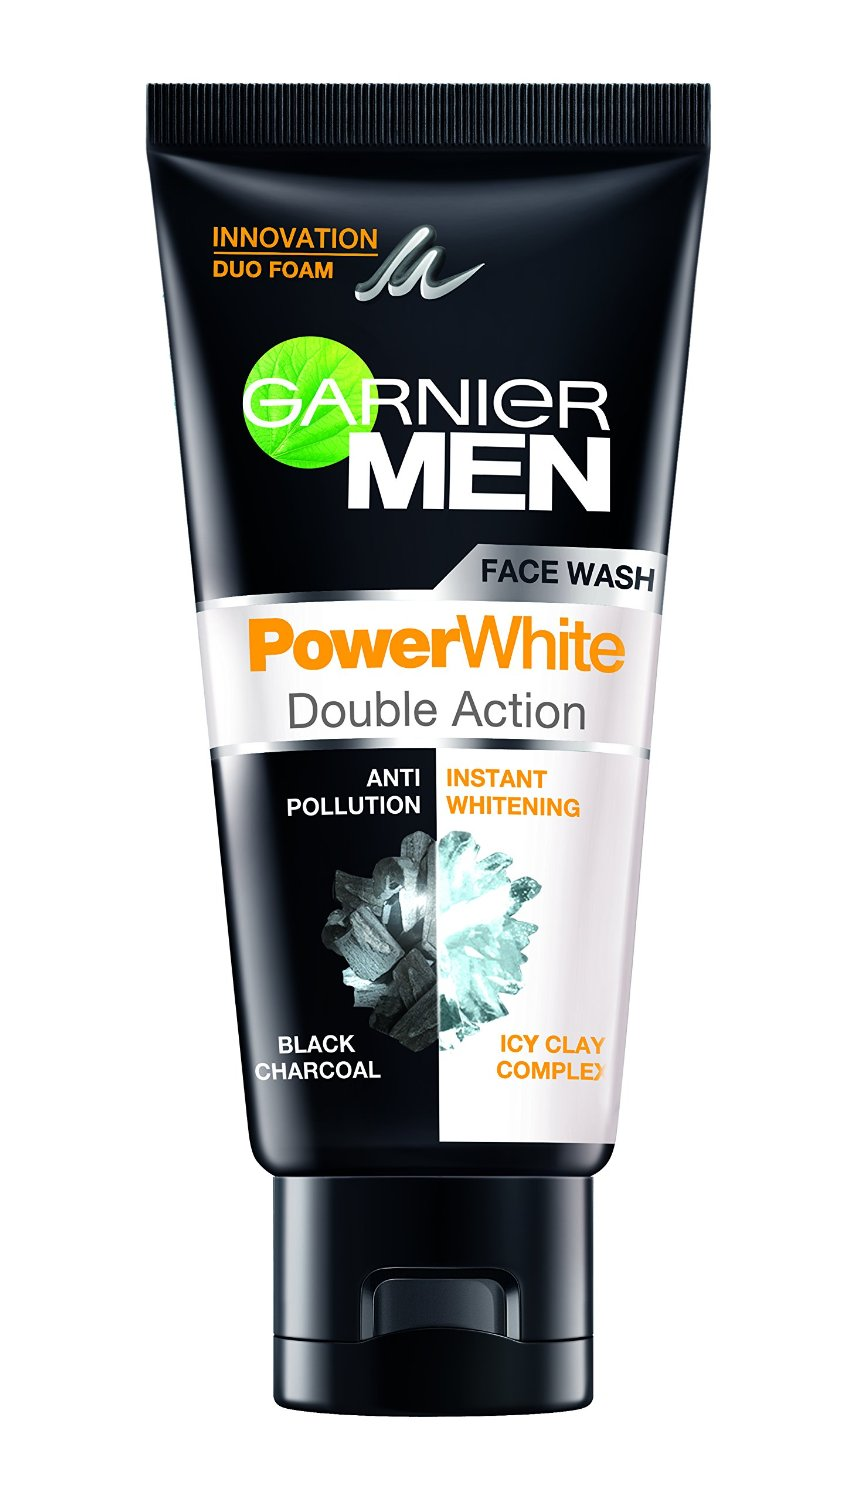 GARNIER MEN POWER WHITE DOUBLE ACTION FACE WASH - 50 GM